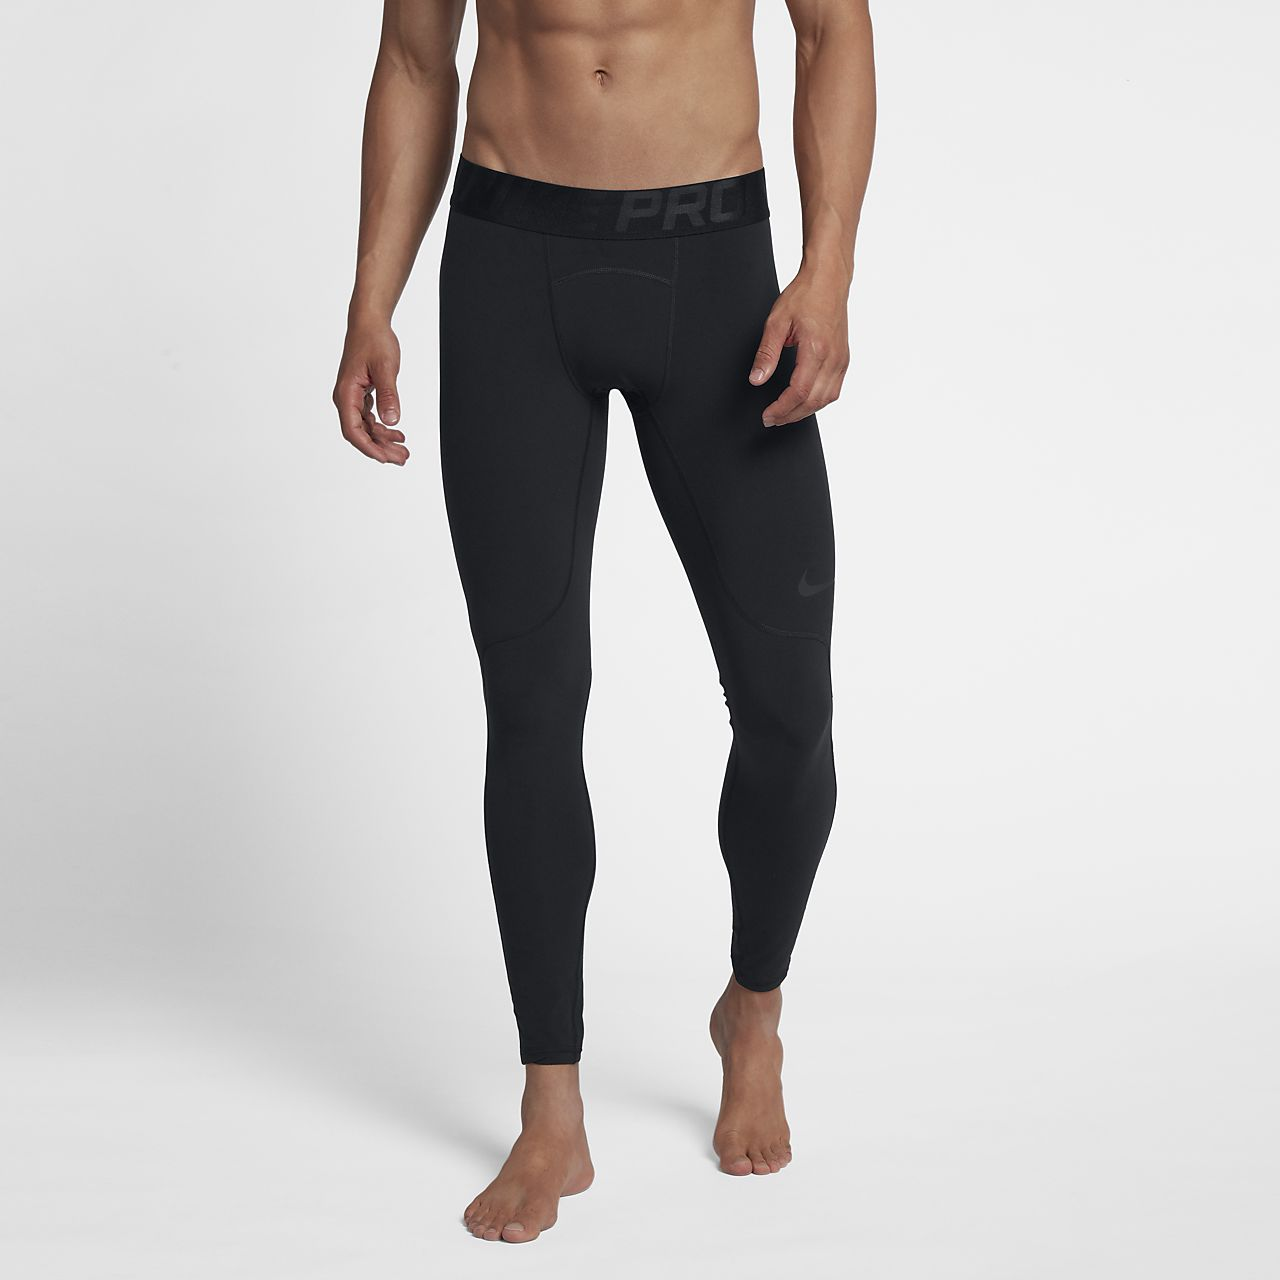 Nike Pro Premium Men's Tights